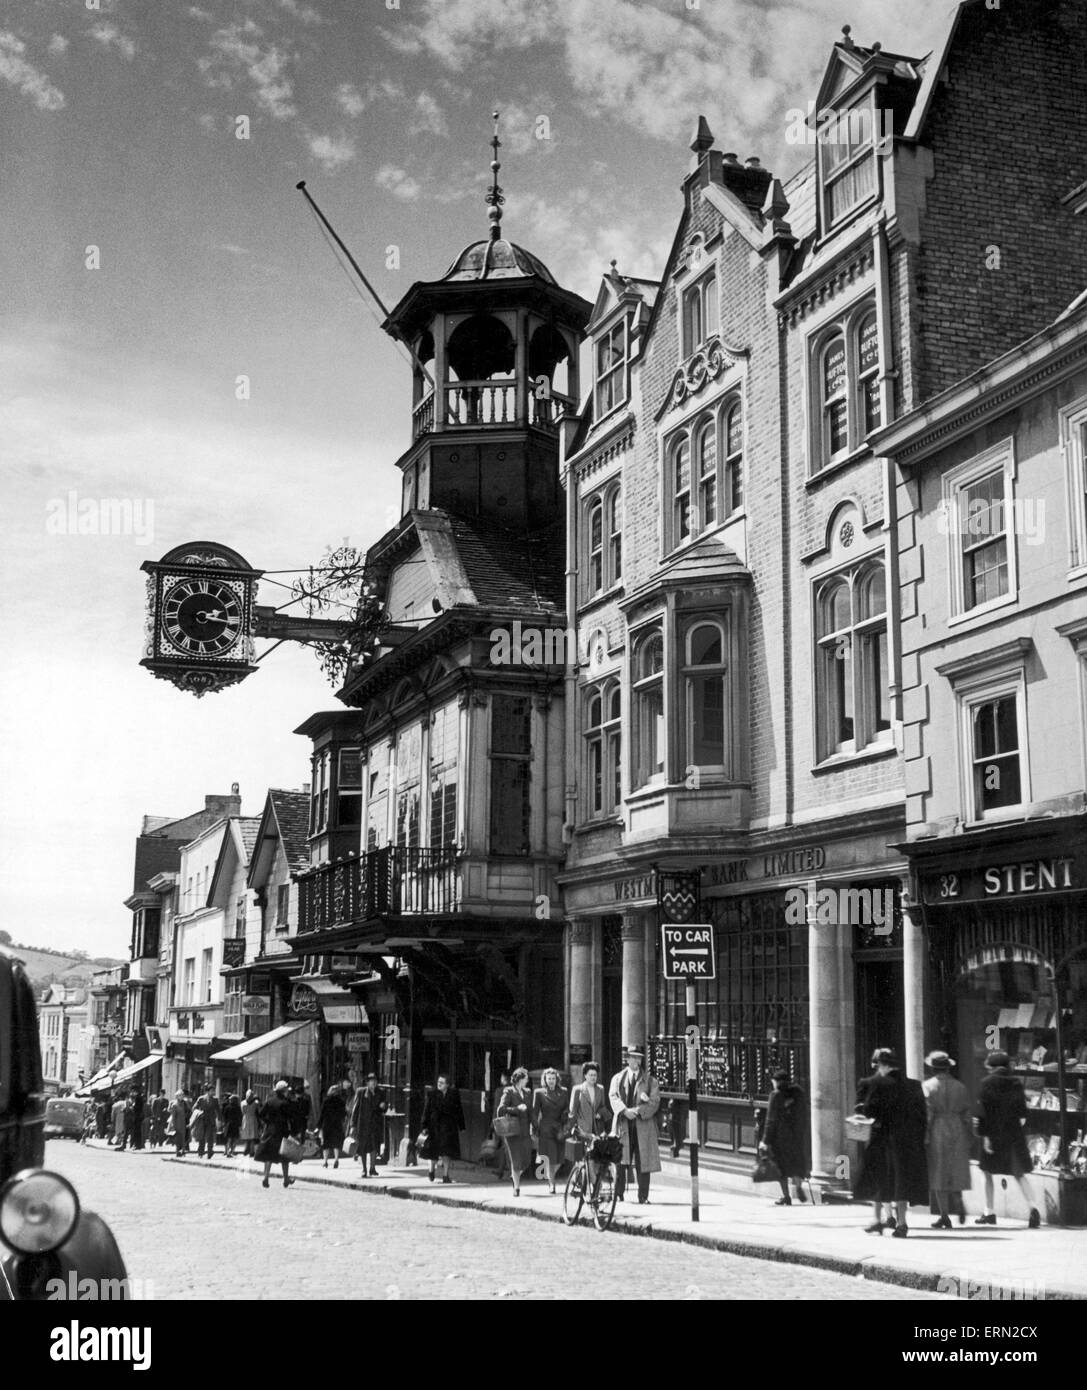 High Street and Guildhall, Guildford, Surrey, circa 1950 - Stock Image